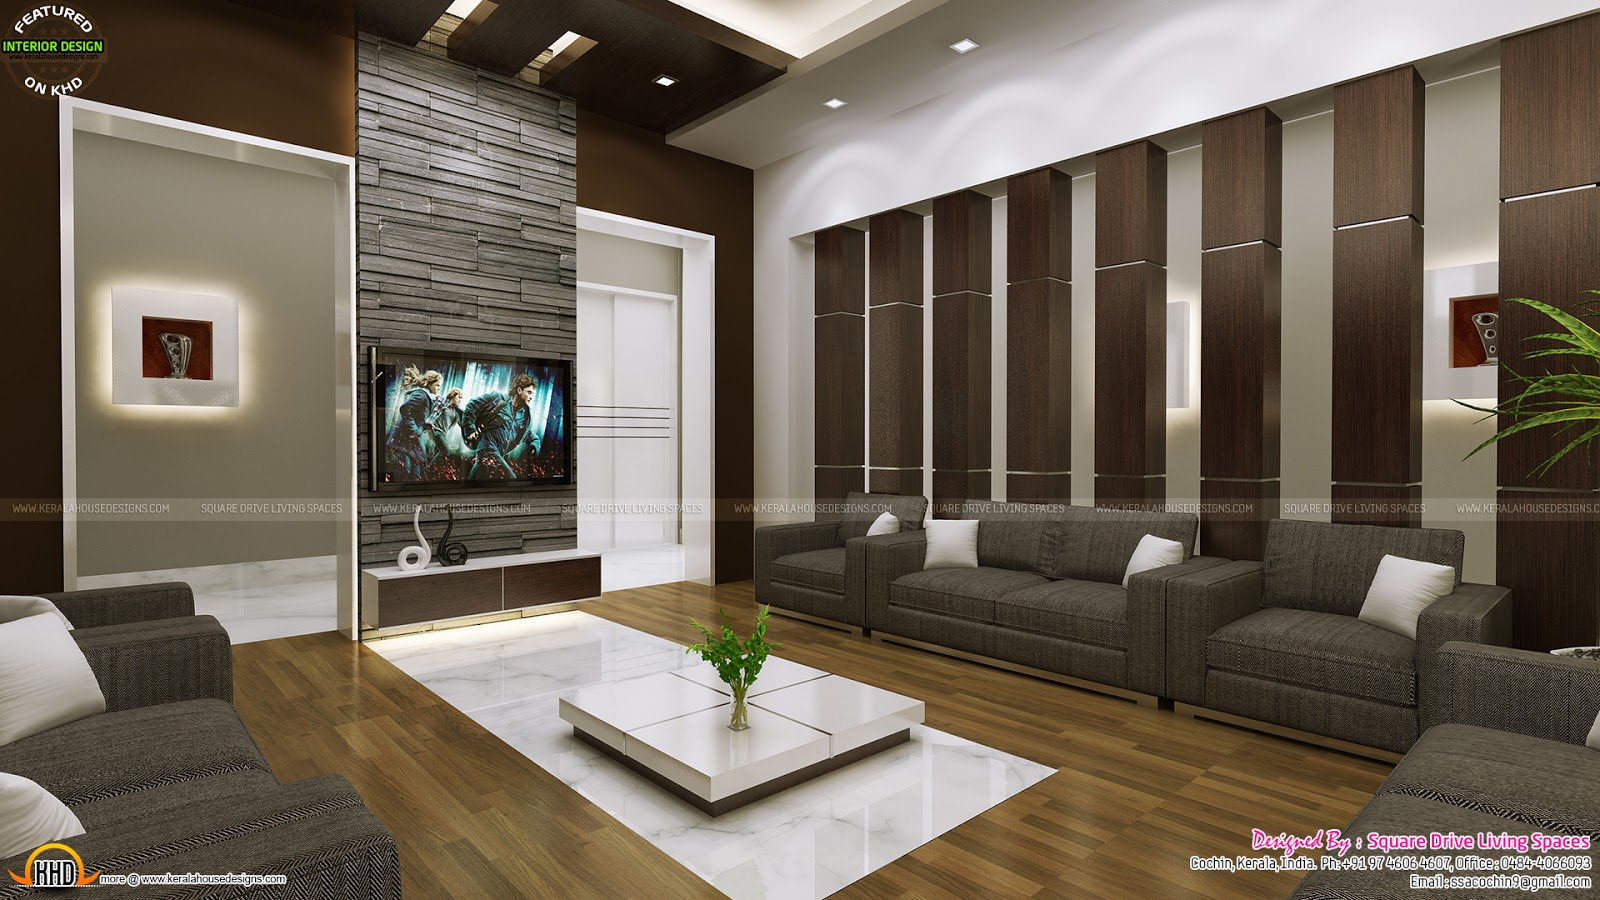 Attractive home interior ideas kerala home design and for Home interiors ideas photos